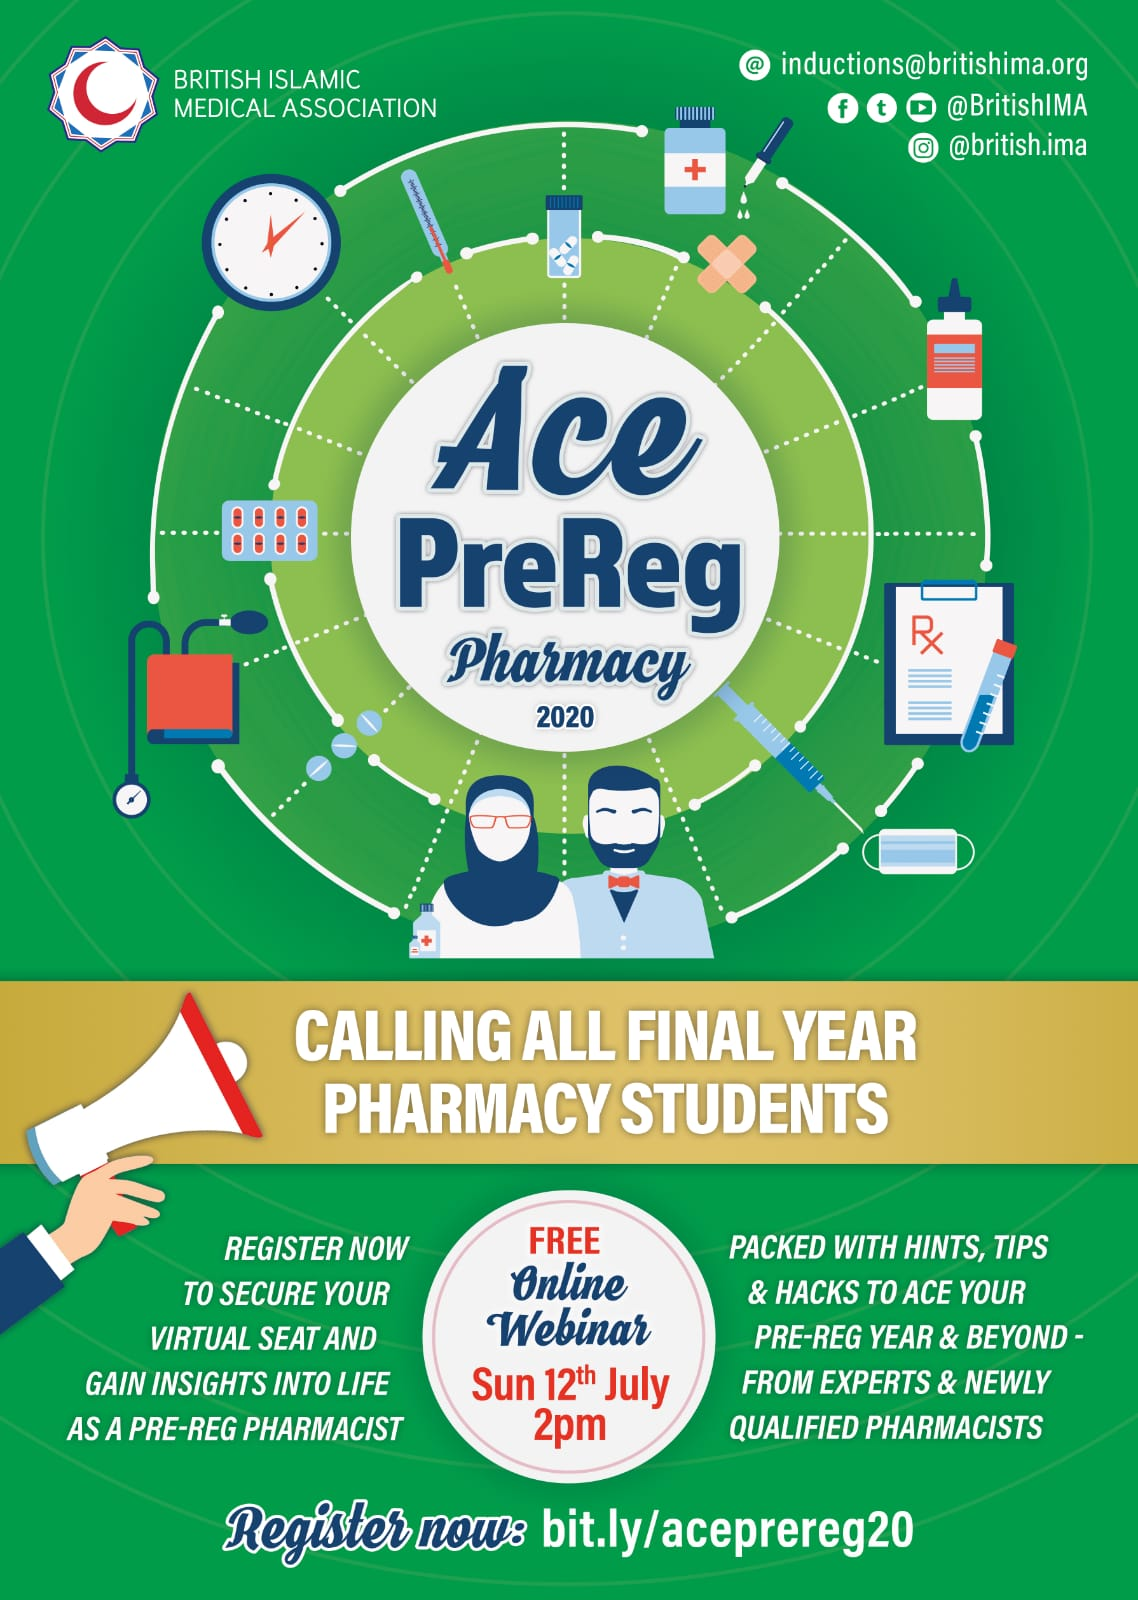 BIMA ACE PreReg Pharmacy 2020